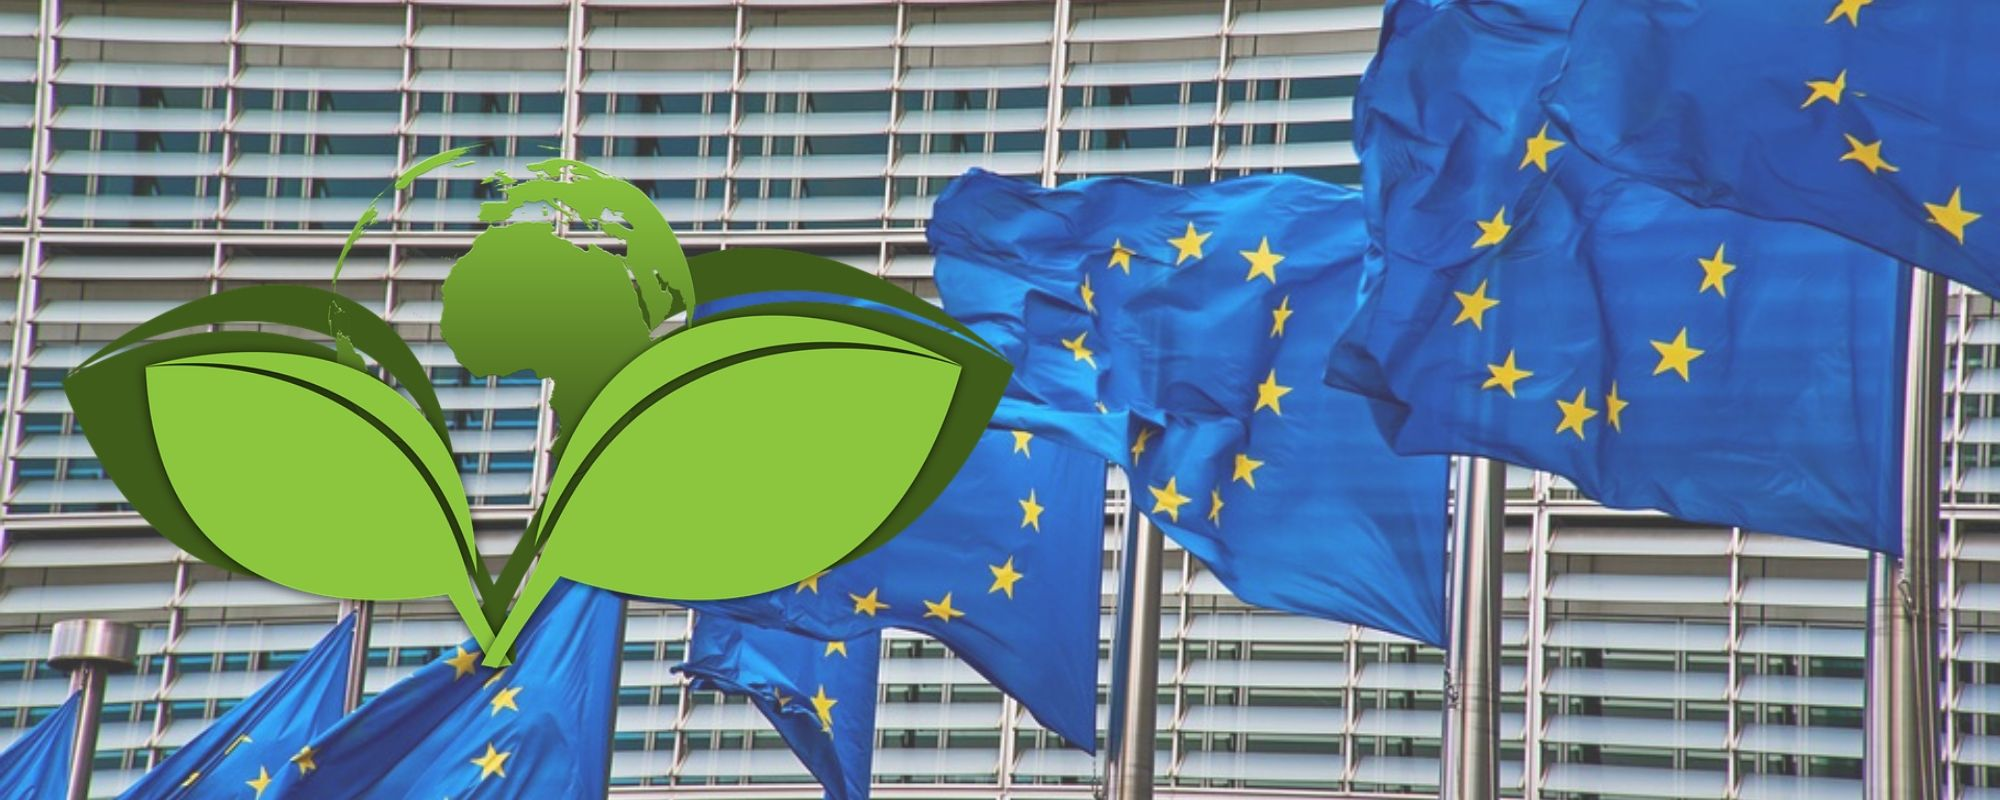 Europe: the relevant policies to support bioplastics